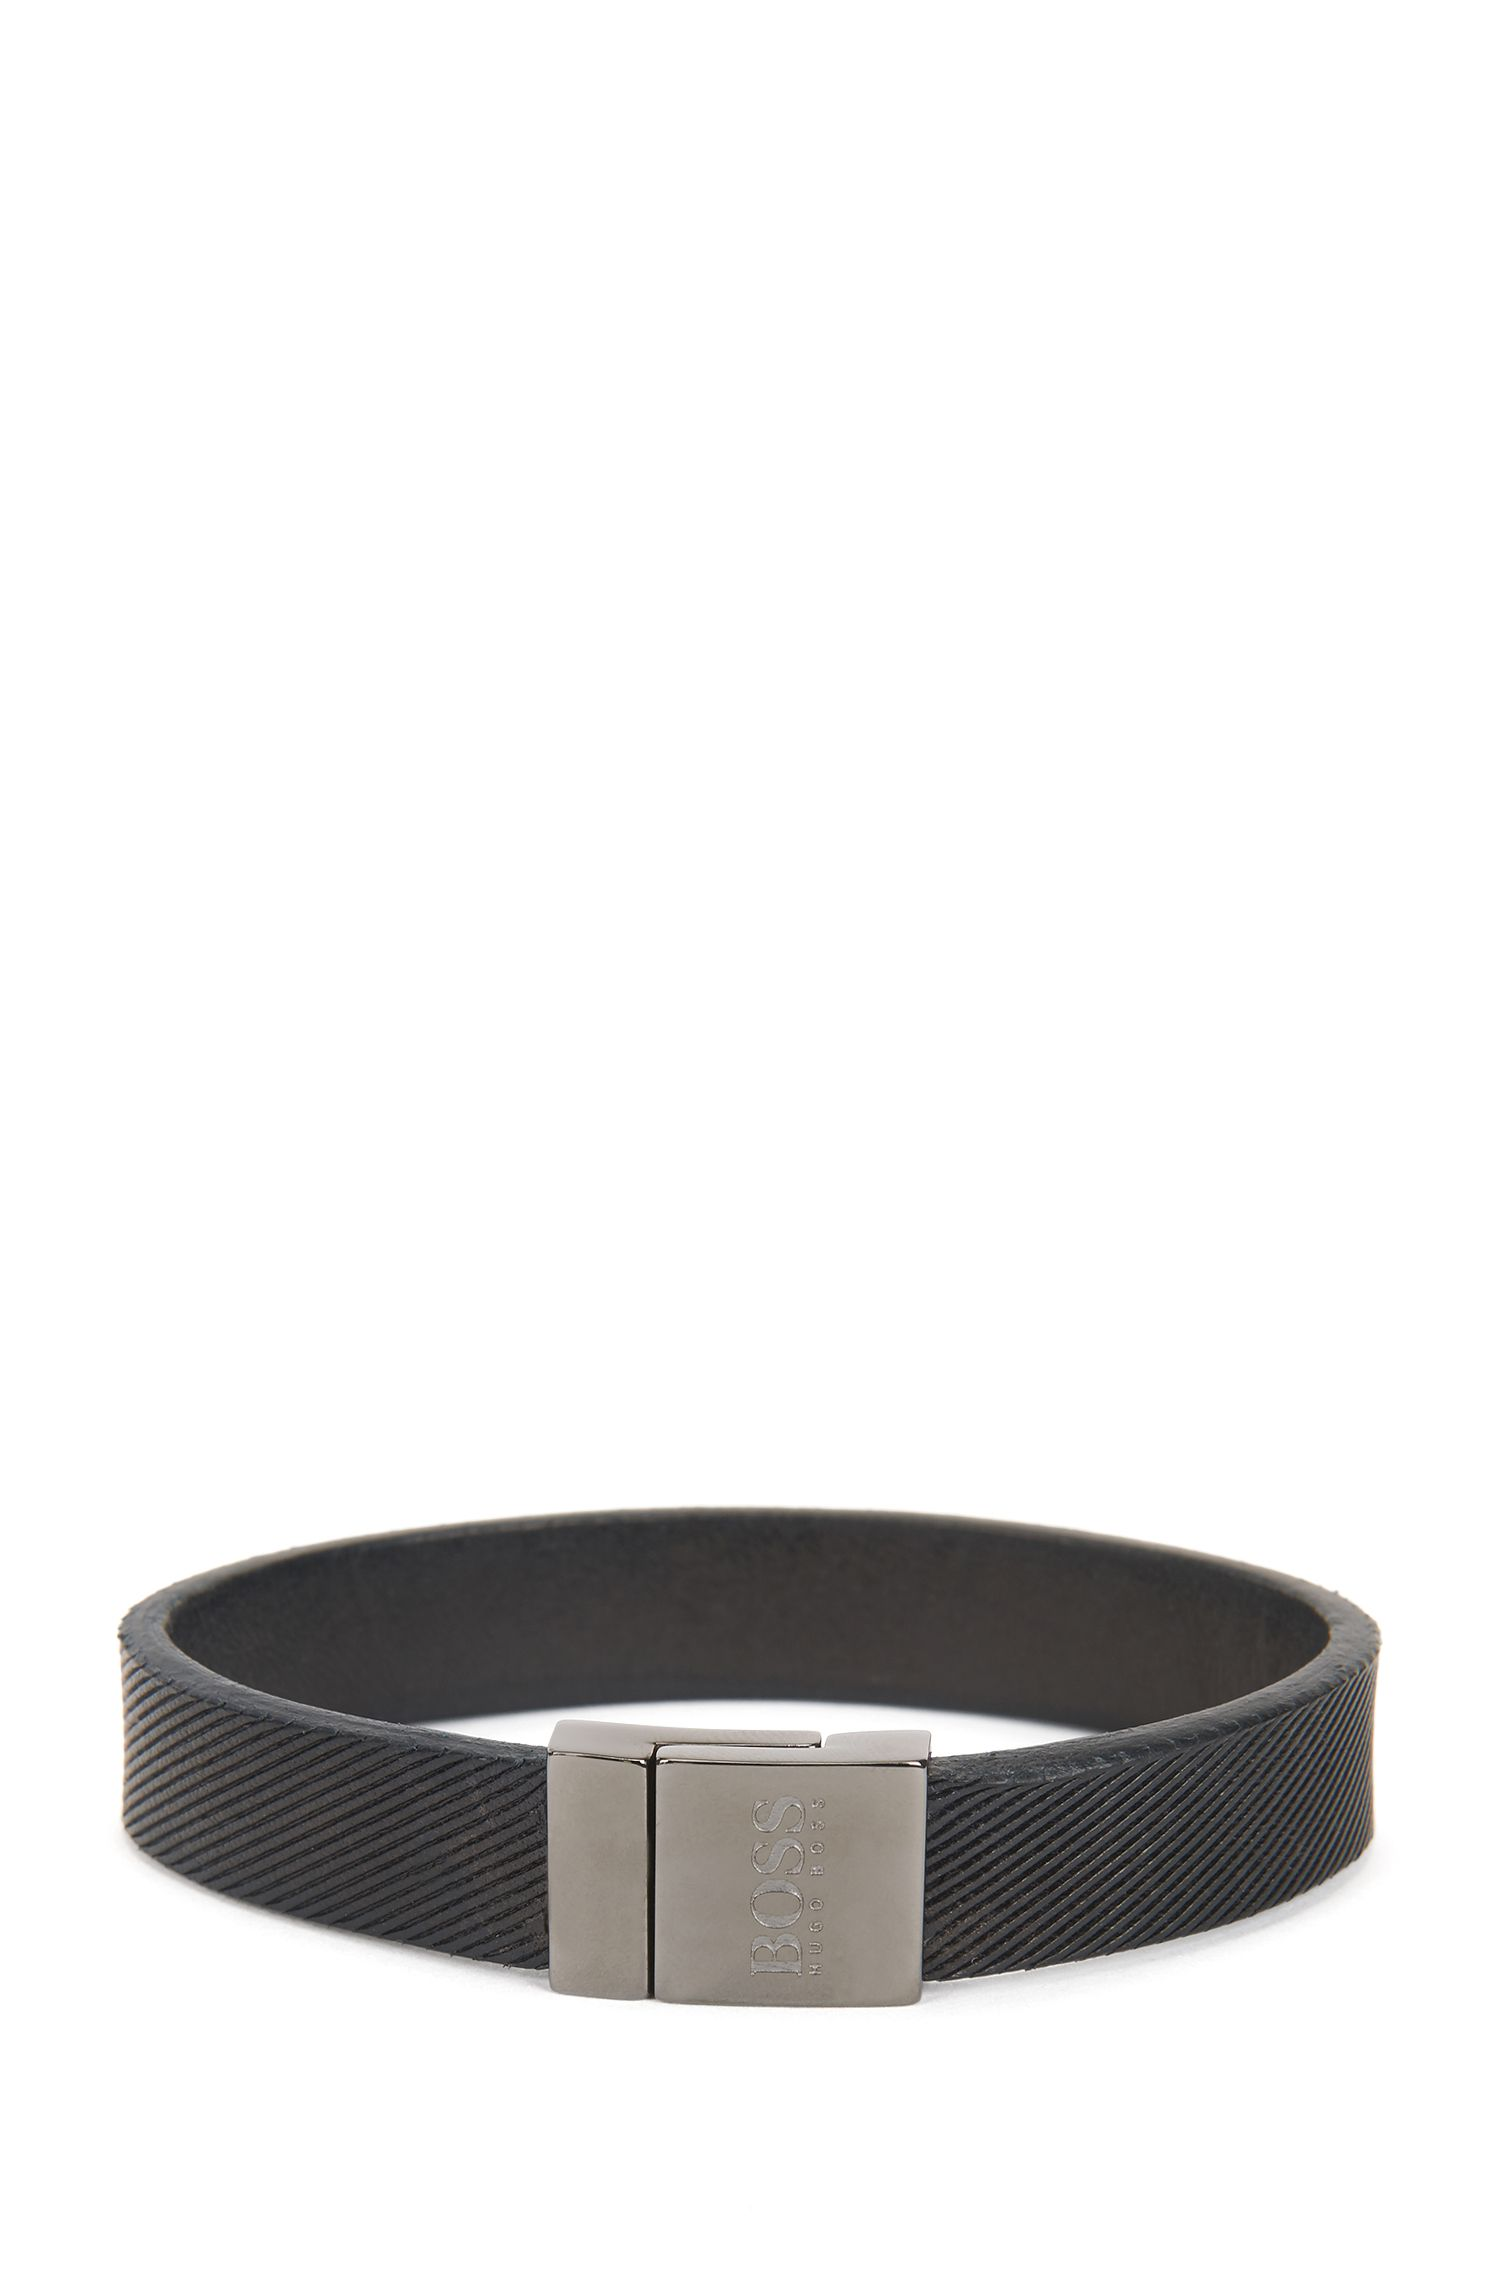 Textured leather bracelet with magnetic closure